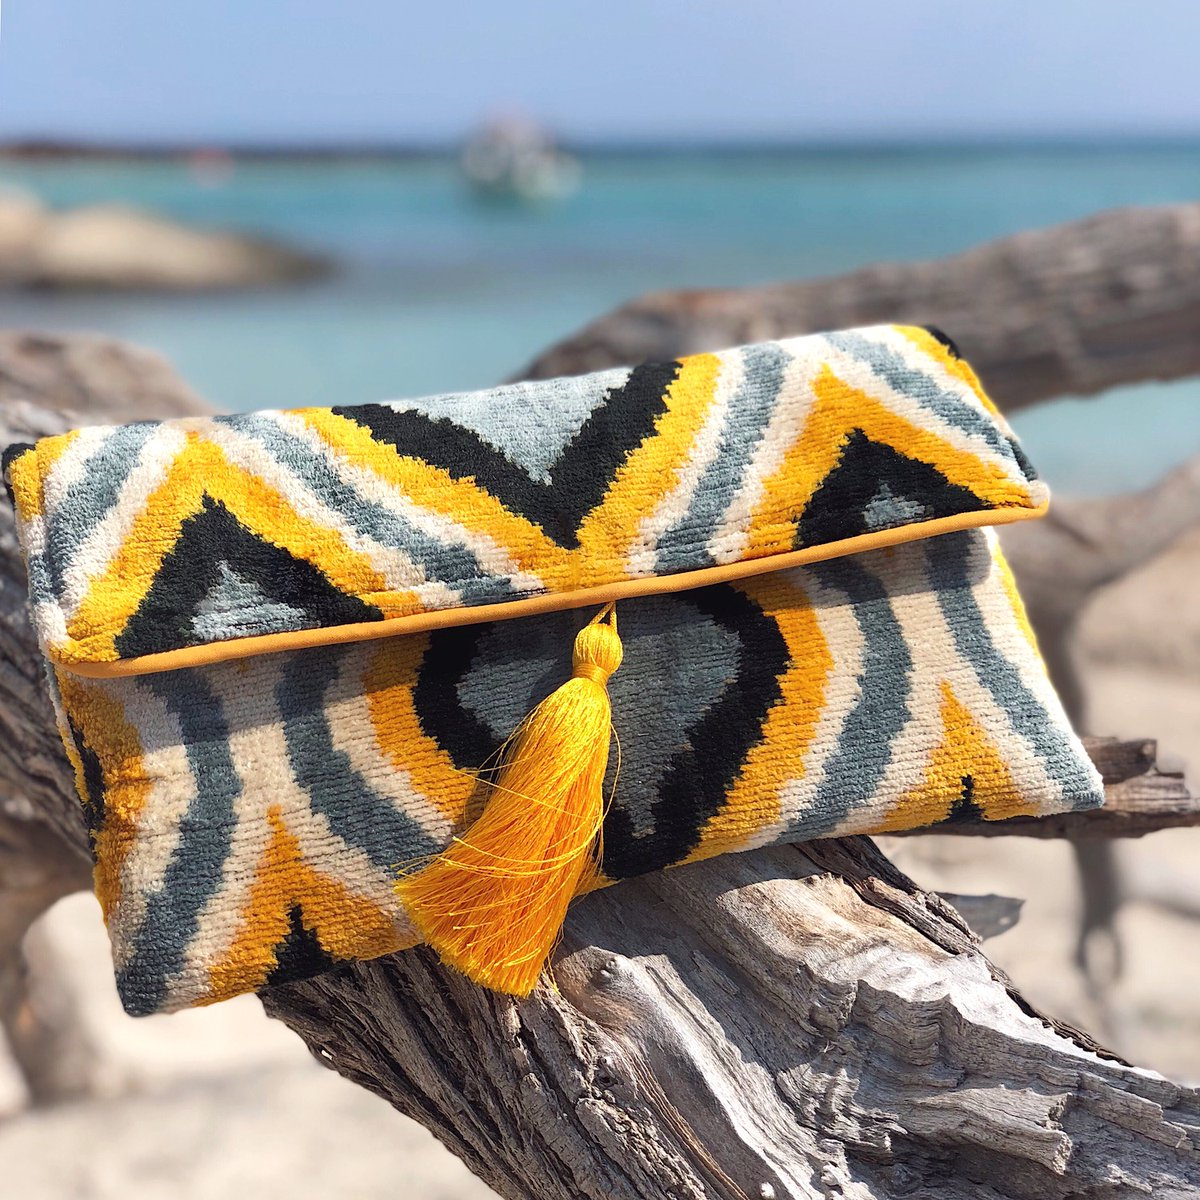 JULY OFFER! 30% discount on all summer bags at https://etsy.me/2XaEDBk via @Etsy pic.twitter.com/gr2vvdXAoe